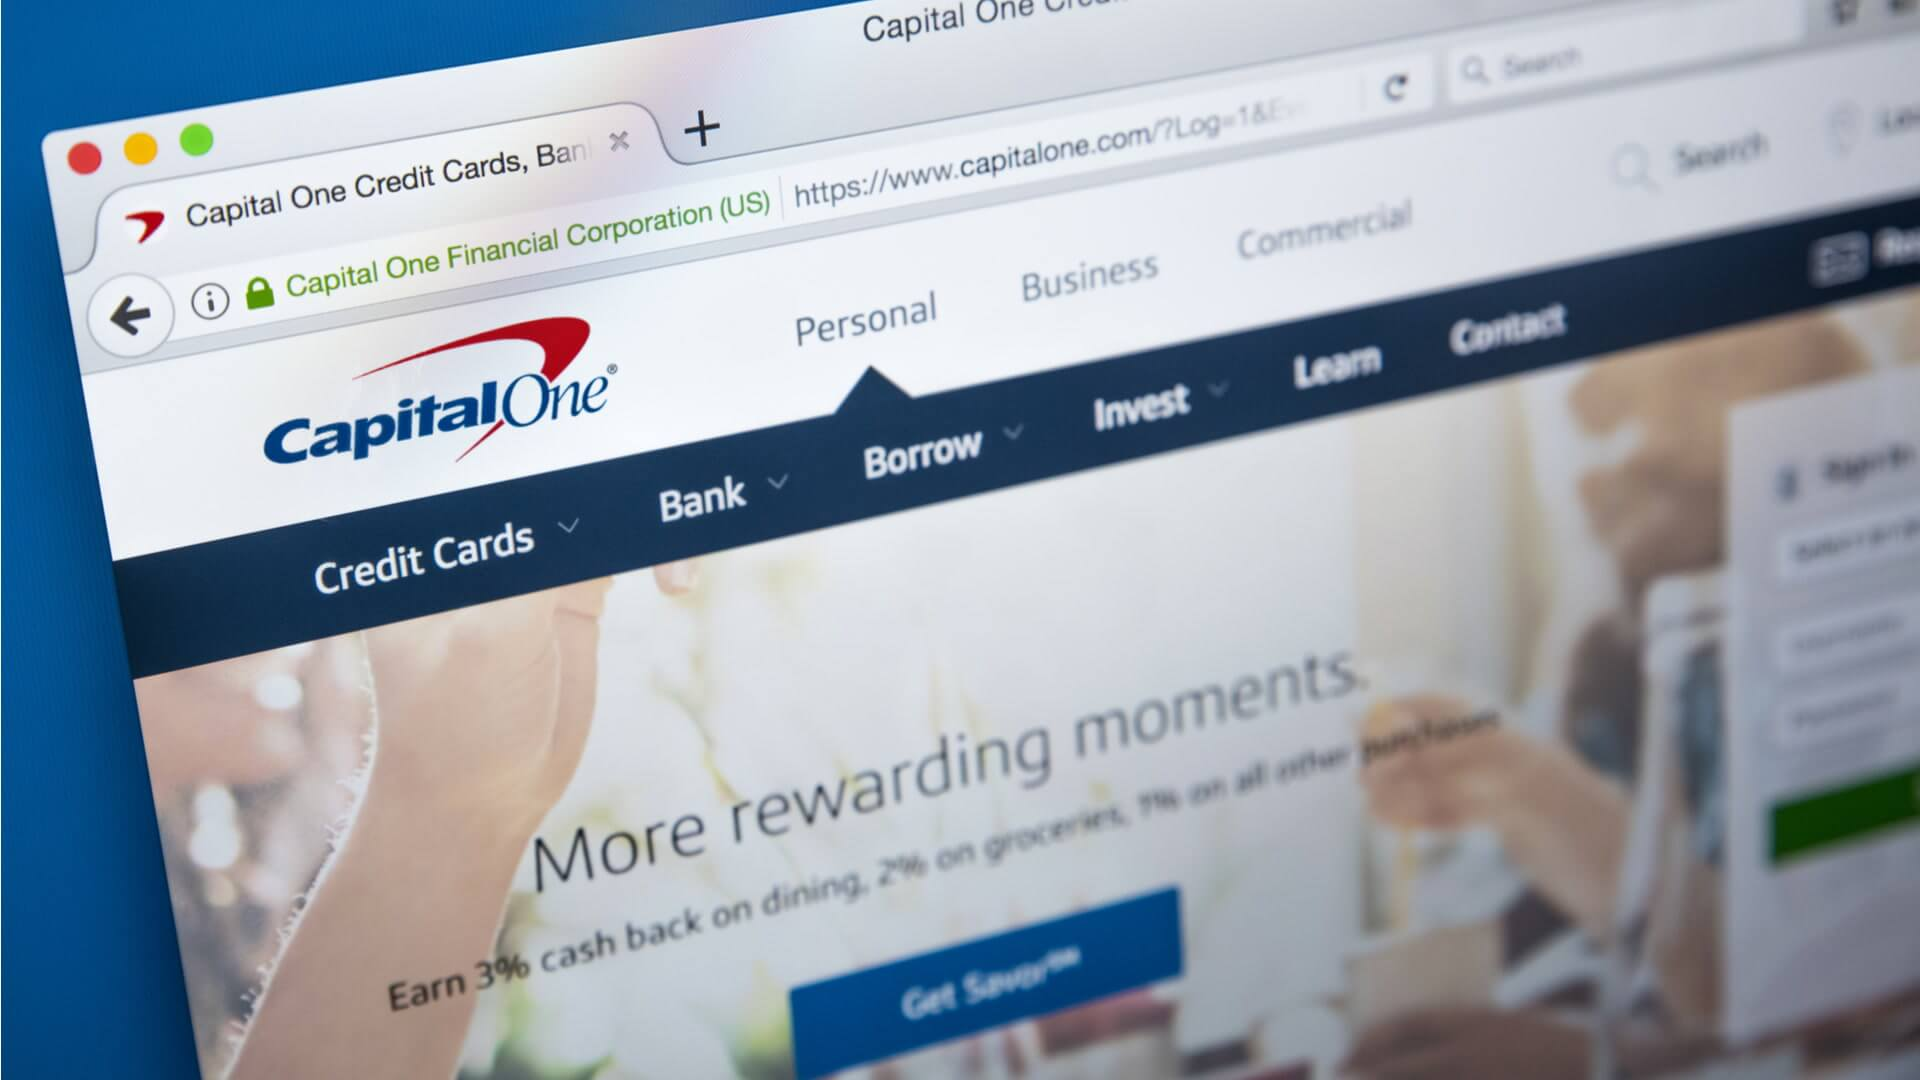 capital one executive office phone number How to Set Up and Manage Your Capital One Account | GOBankingRates